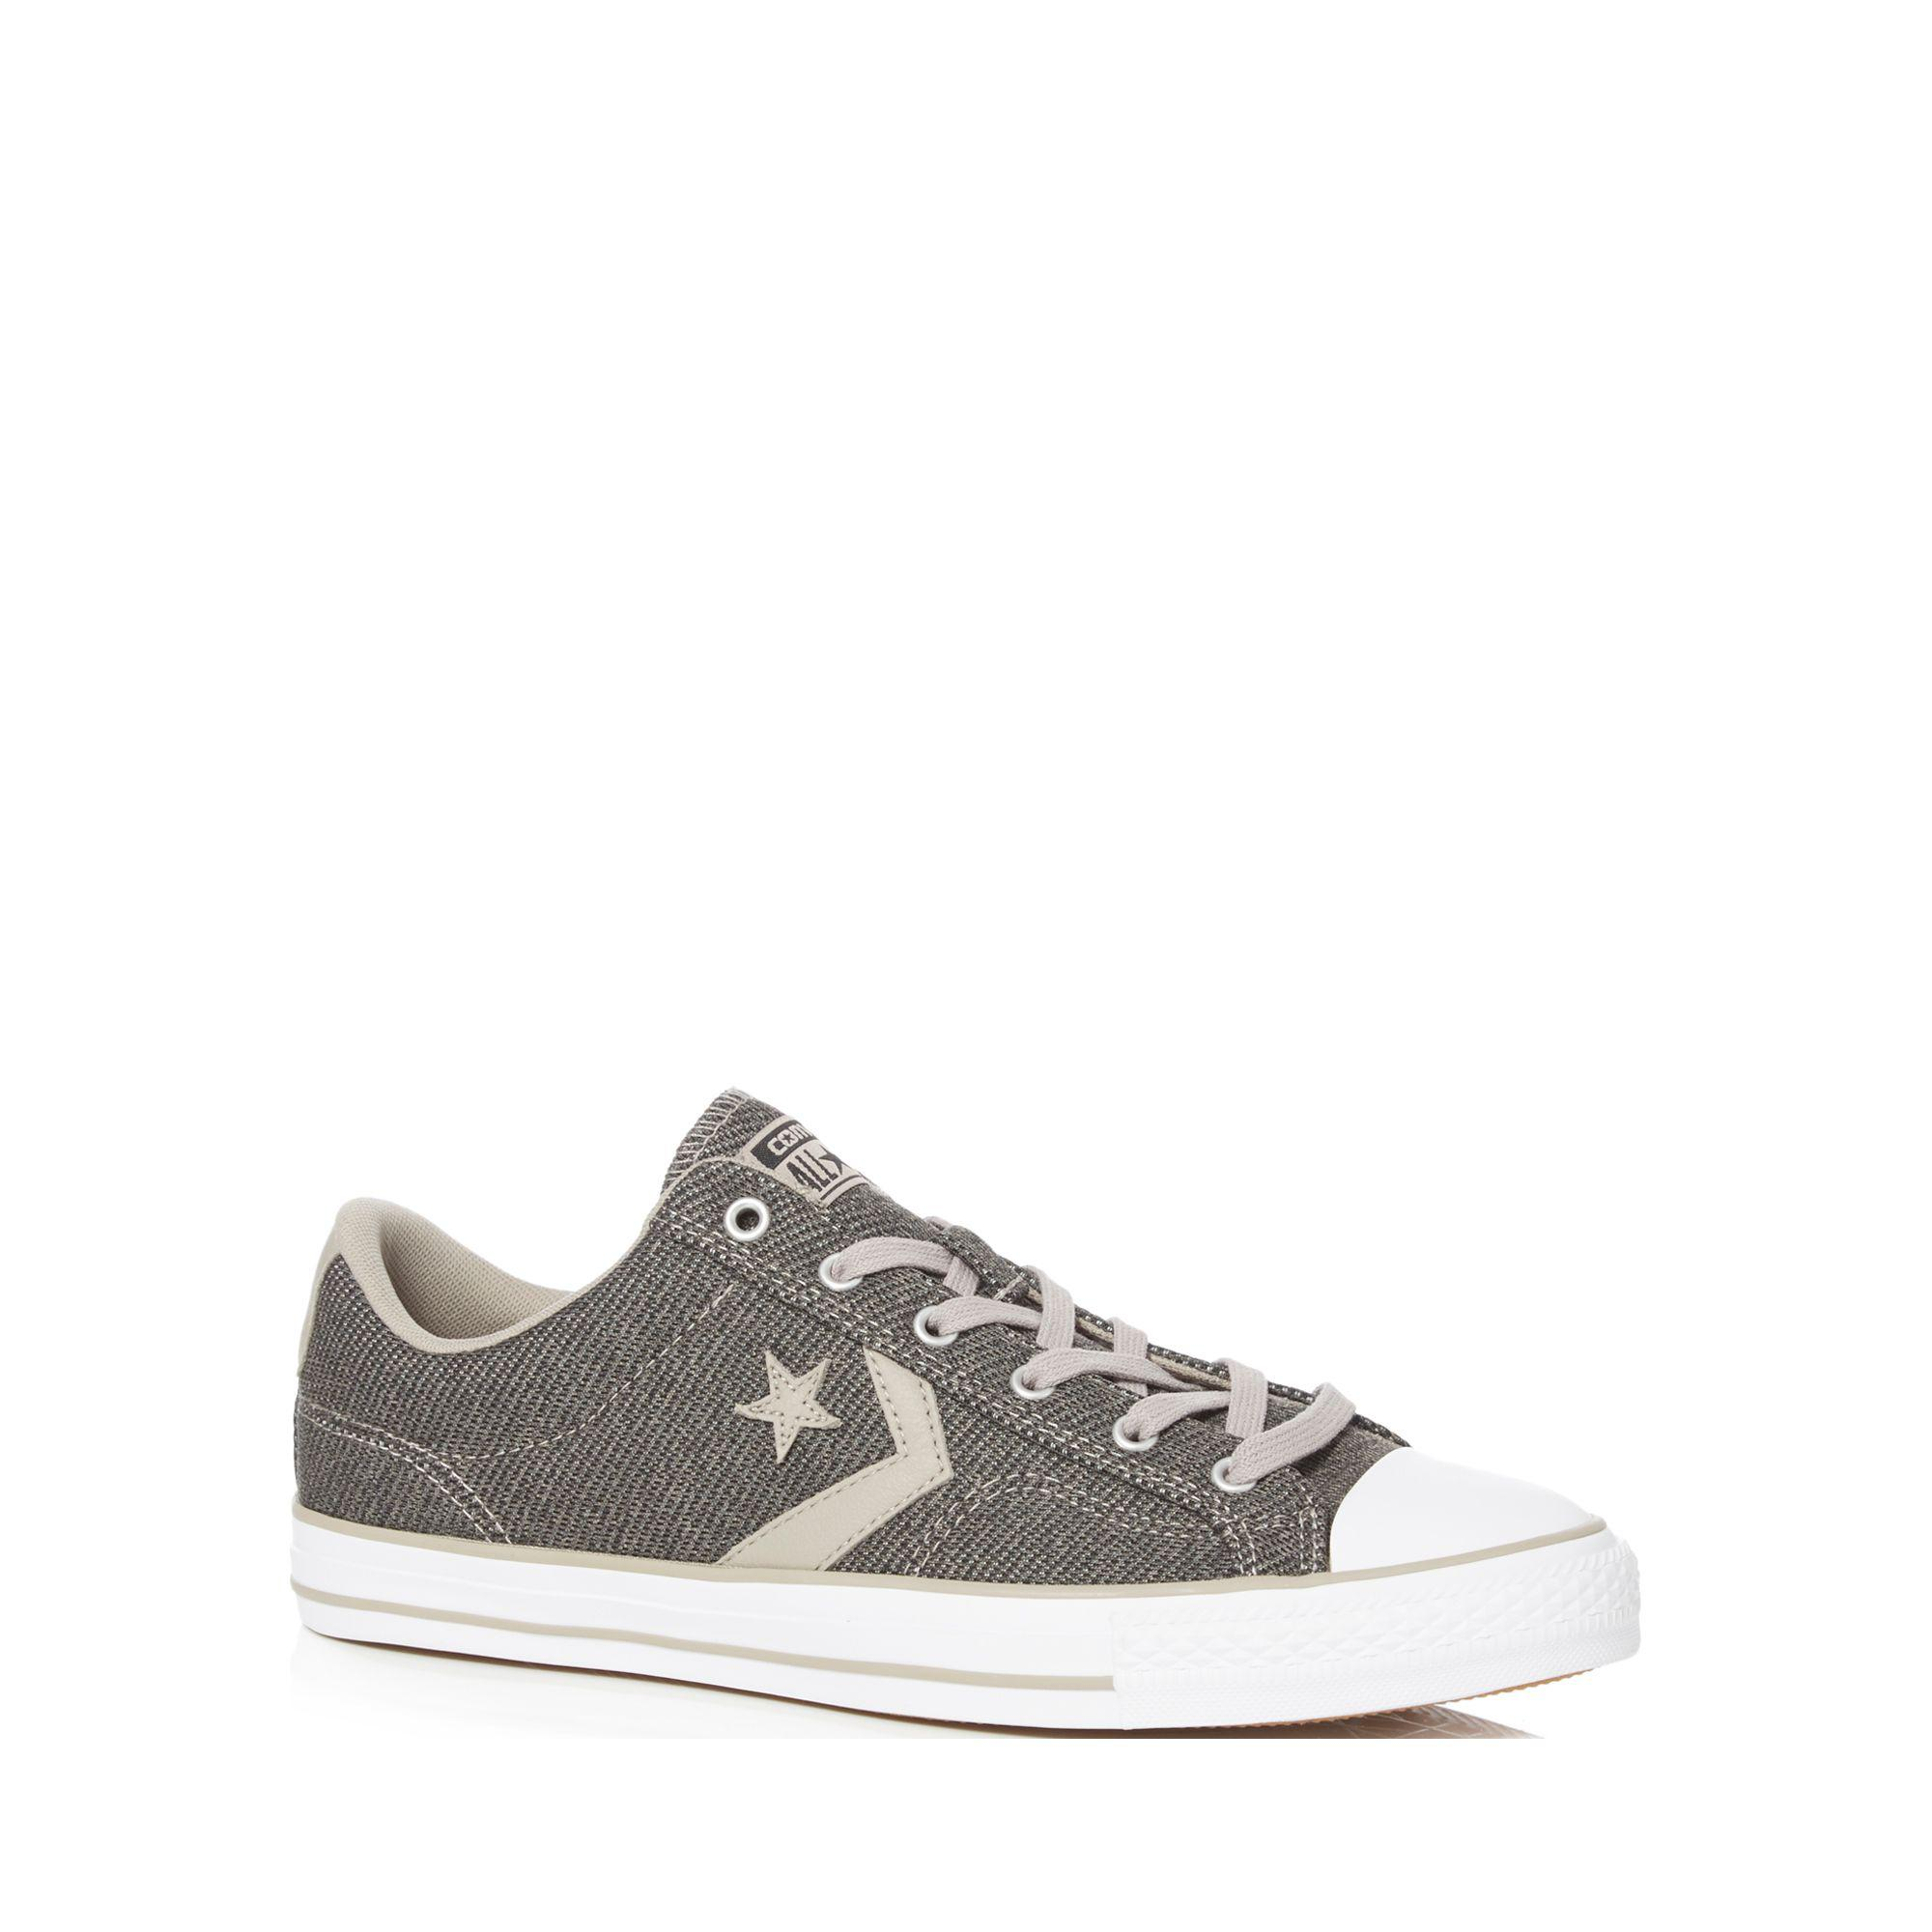 Converse Dark grey 'Star Player' lace up trainers